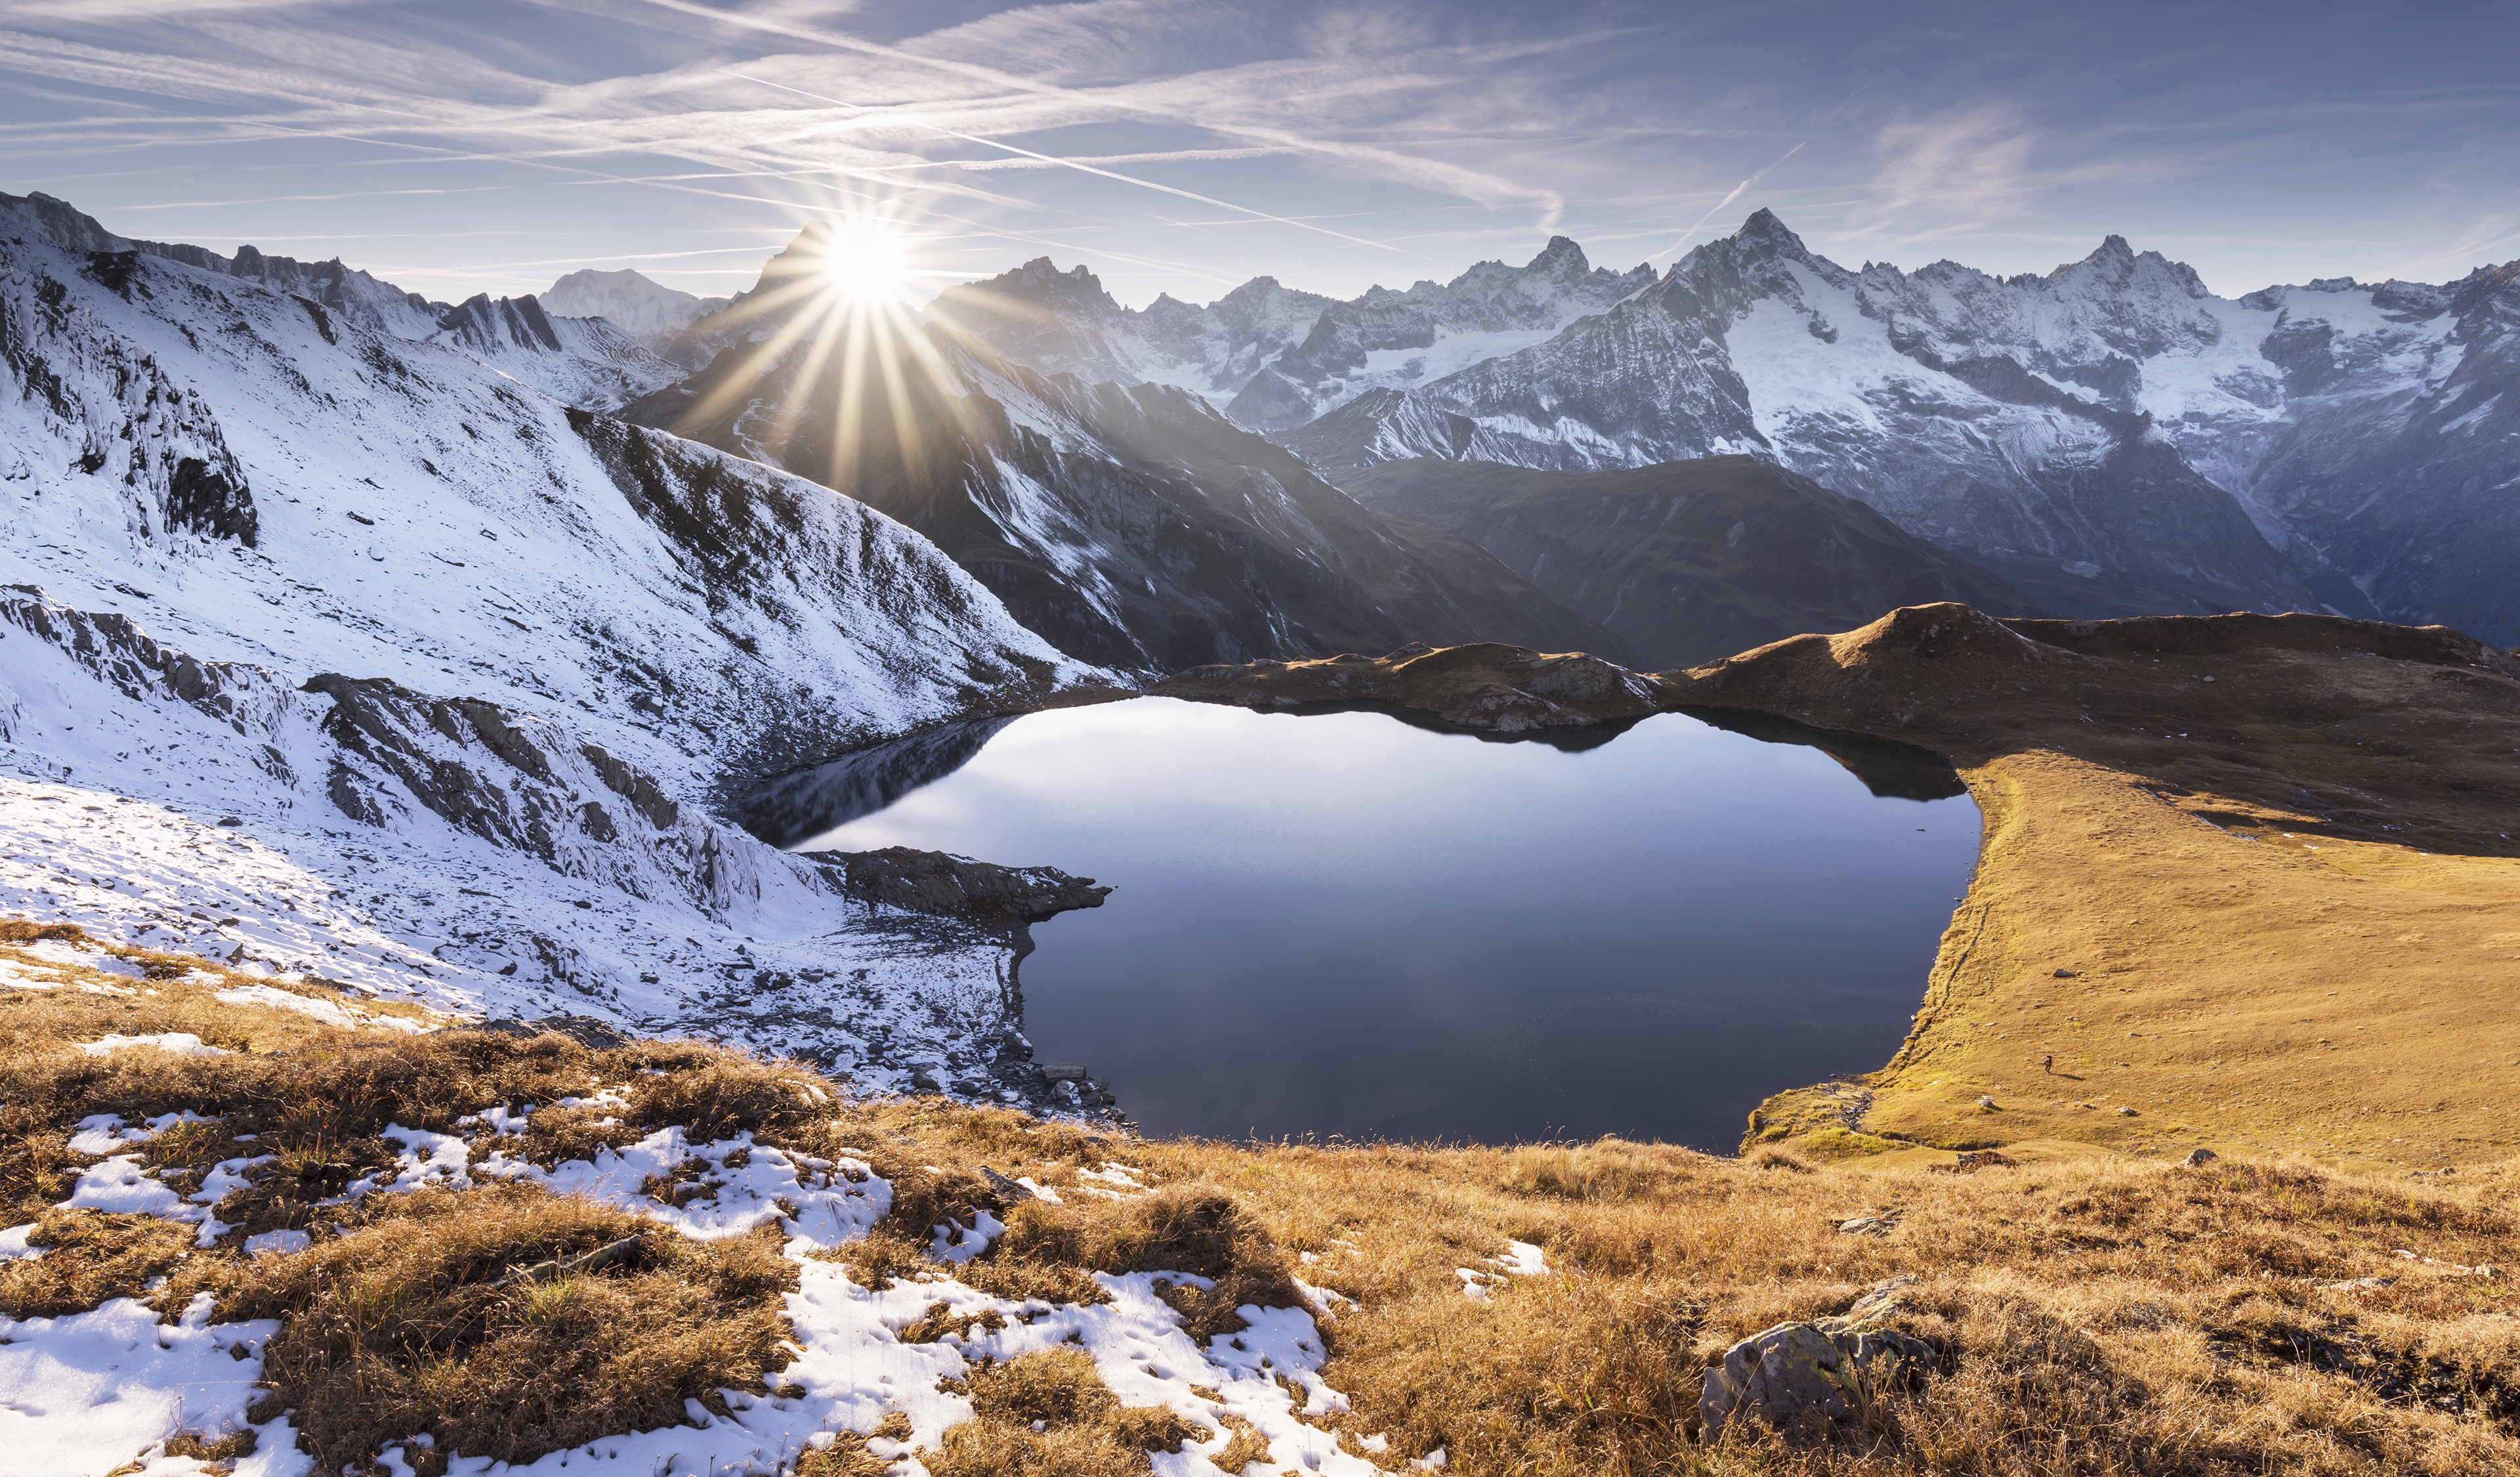 Tarn lake mountains hd nature 4k wallpapers images - Wallpapers 1280x800 nature ...